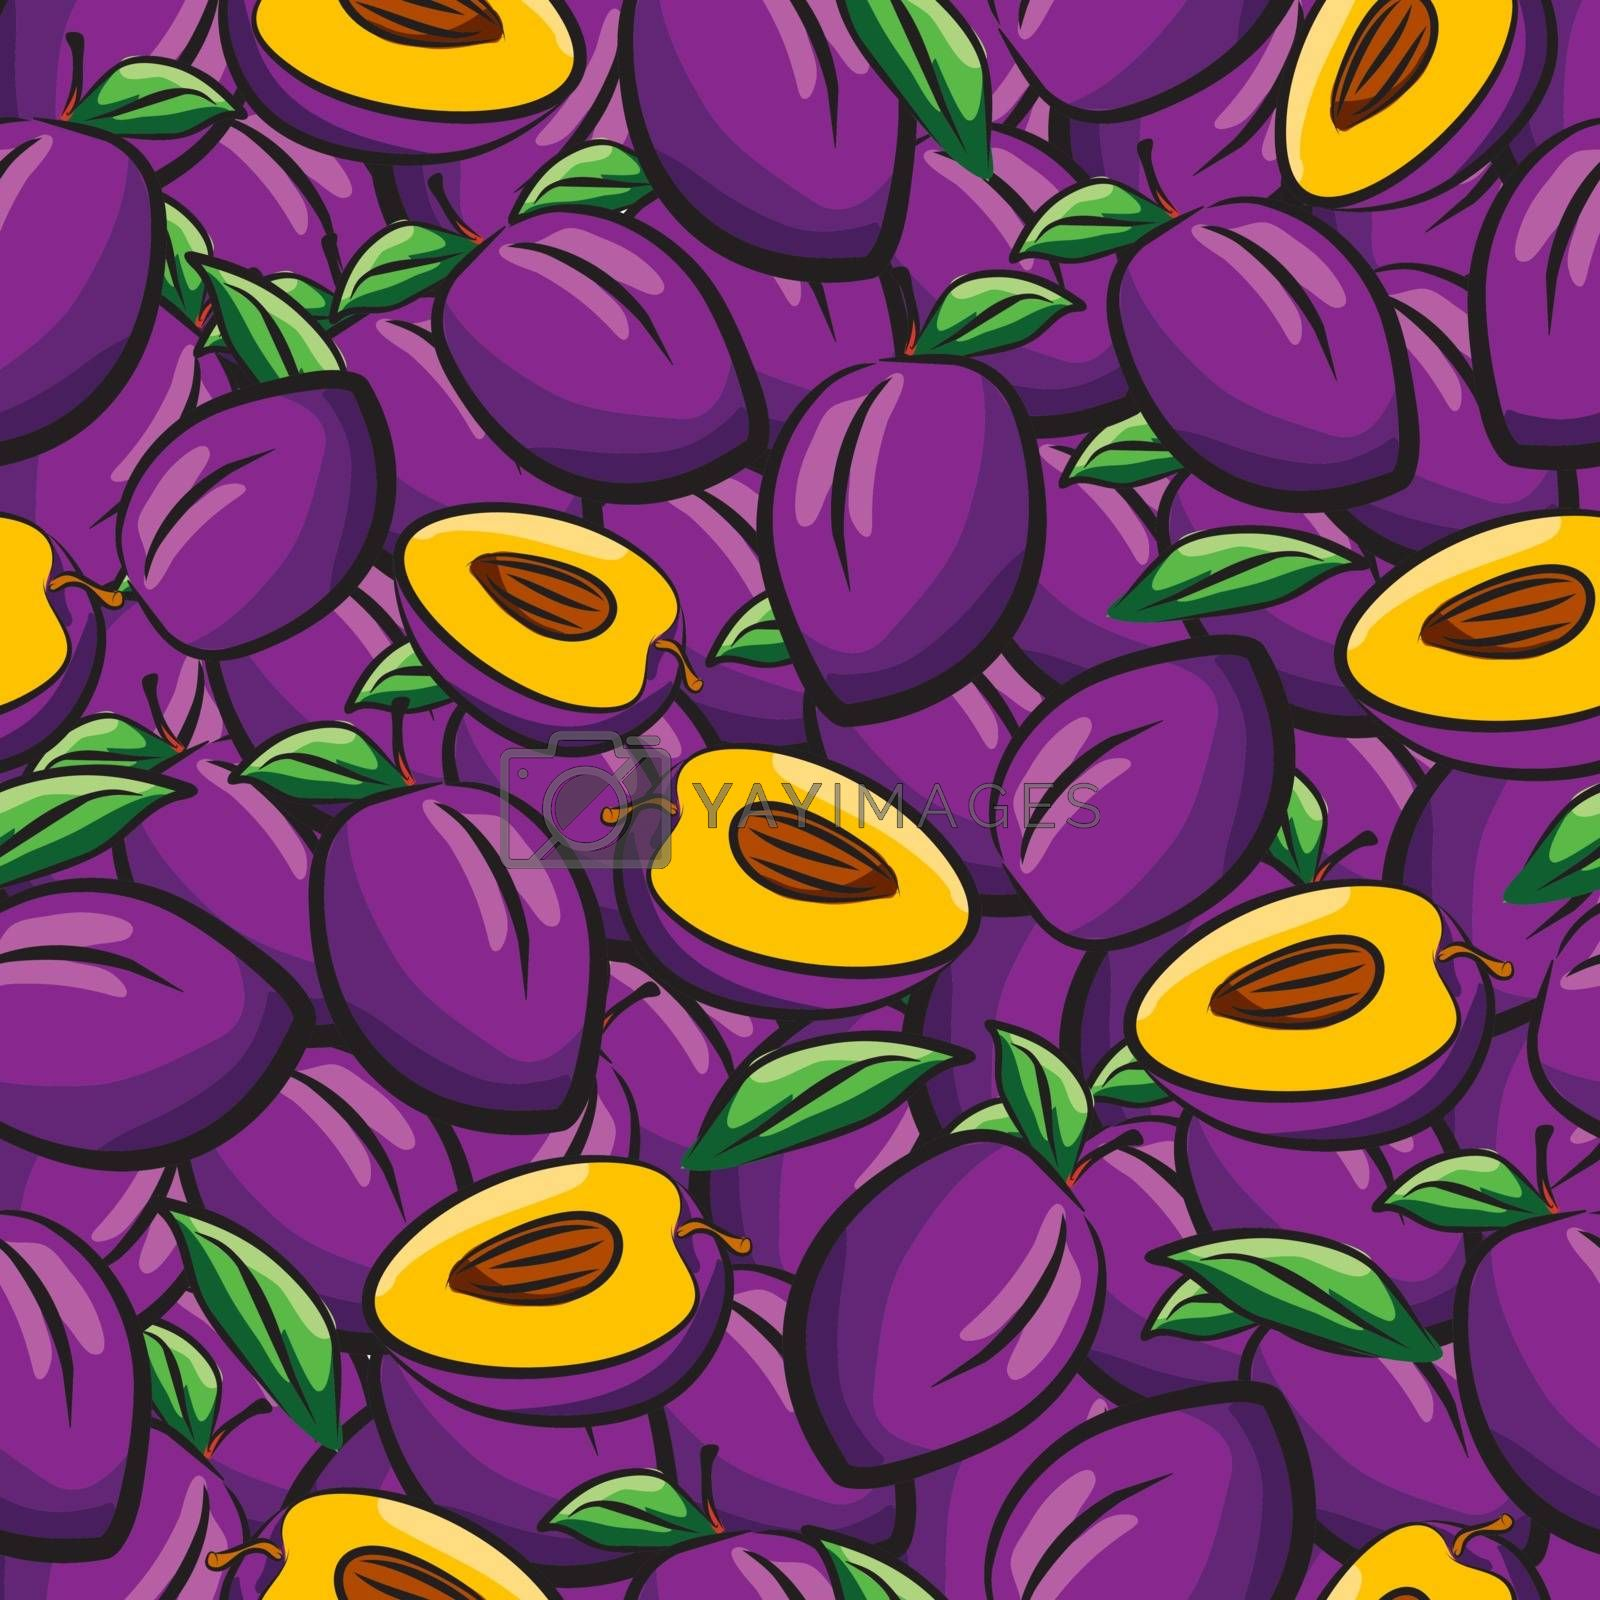 Plum fruits sketch drawing seamless background